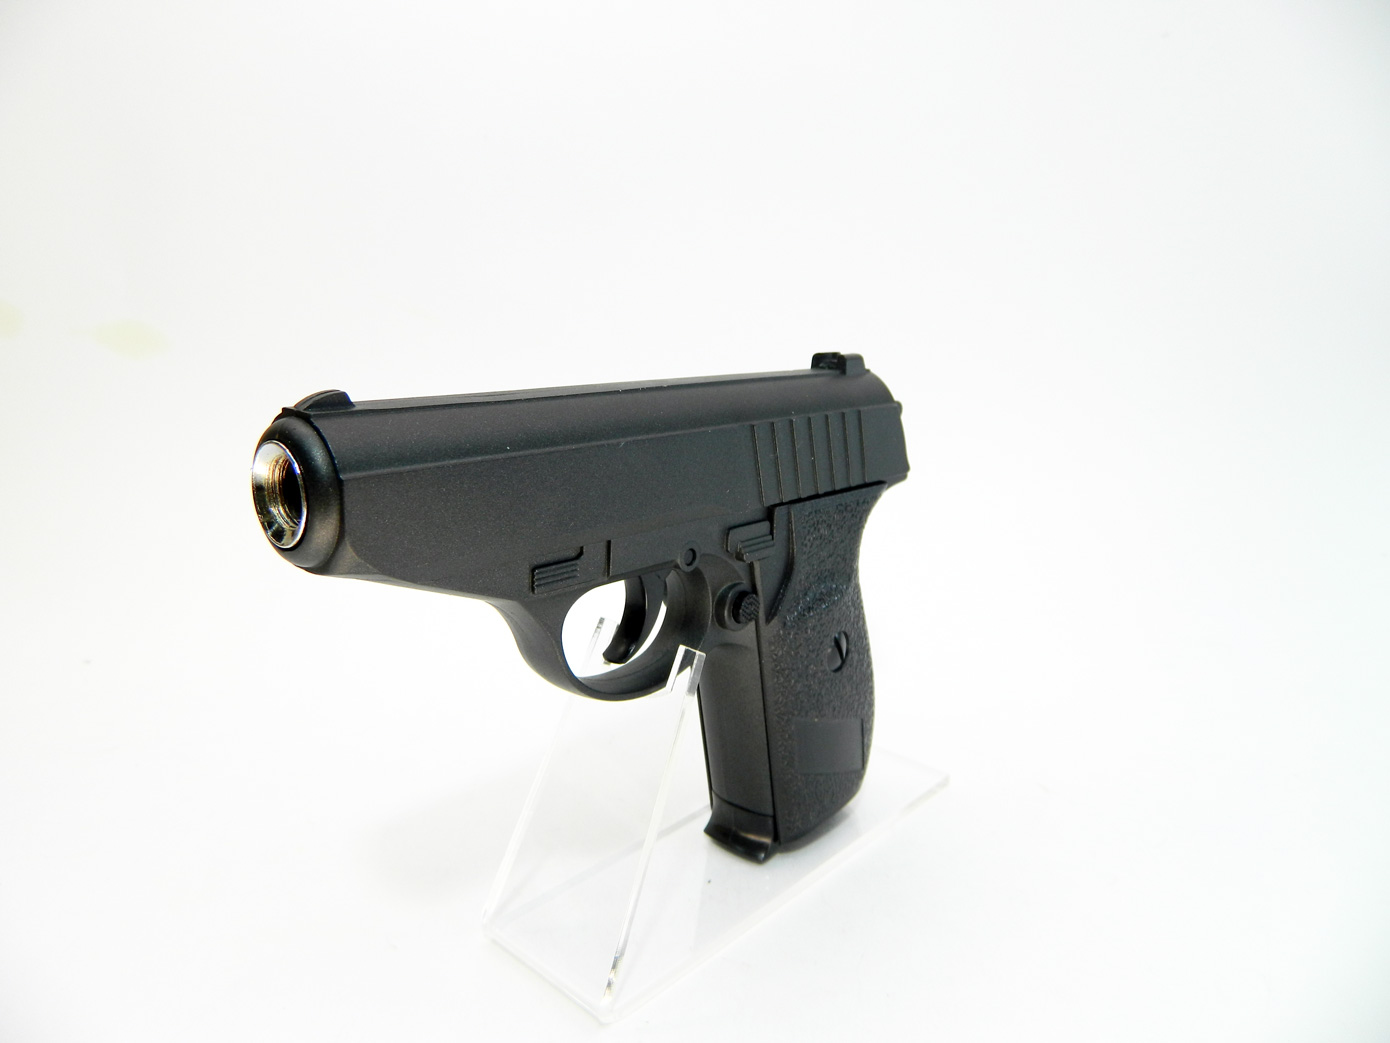 Walther PPK масштаб 1:1 изображение 3